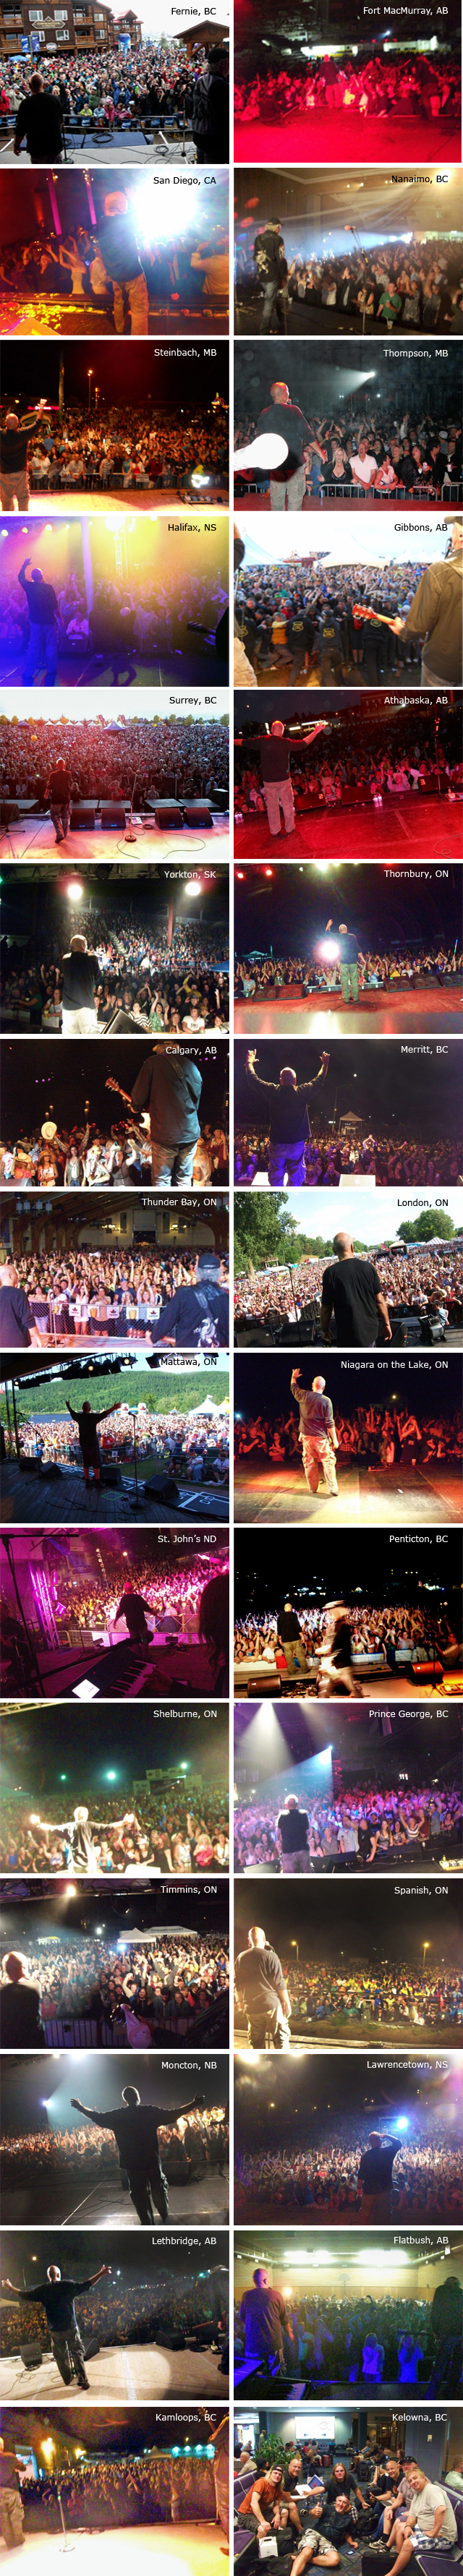 2011-Trooper-Live-Collage-with-Titles-summer-only1.jpg